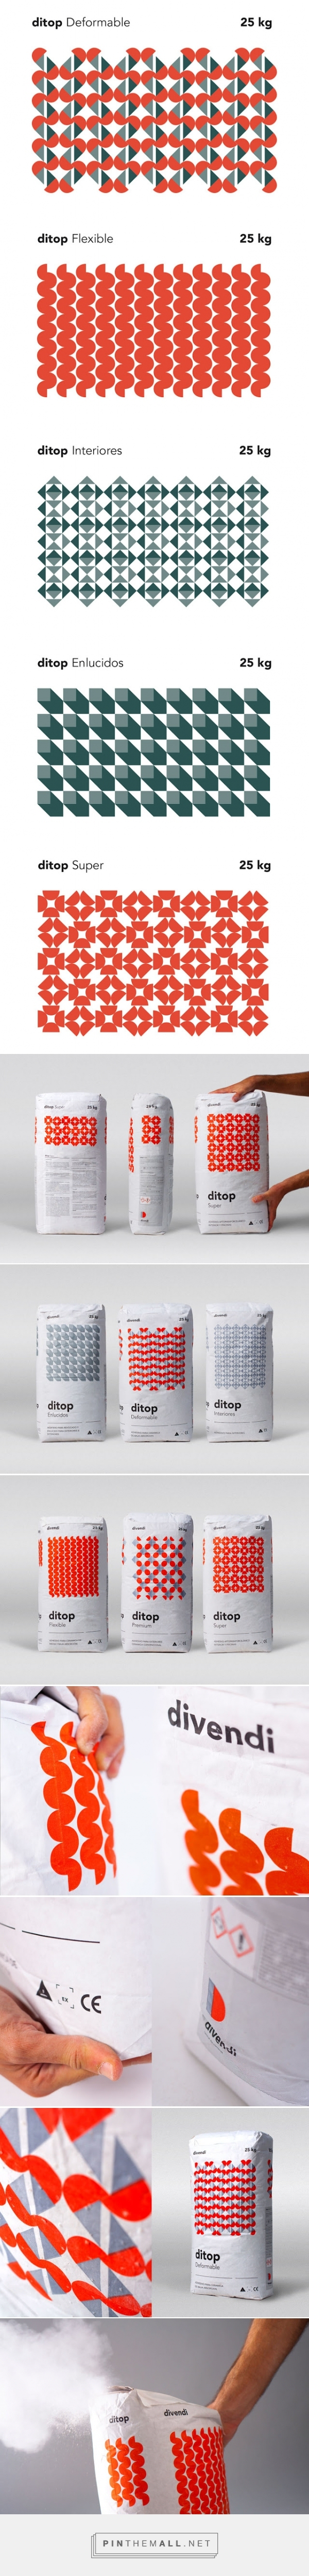 Ditop Cement Packaging Patterns designed by Rubio & del Amo PD